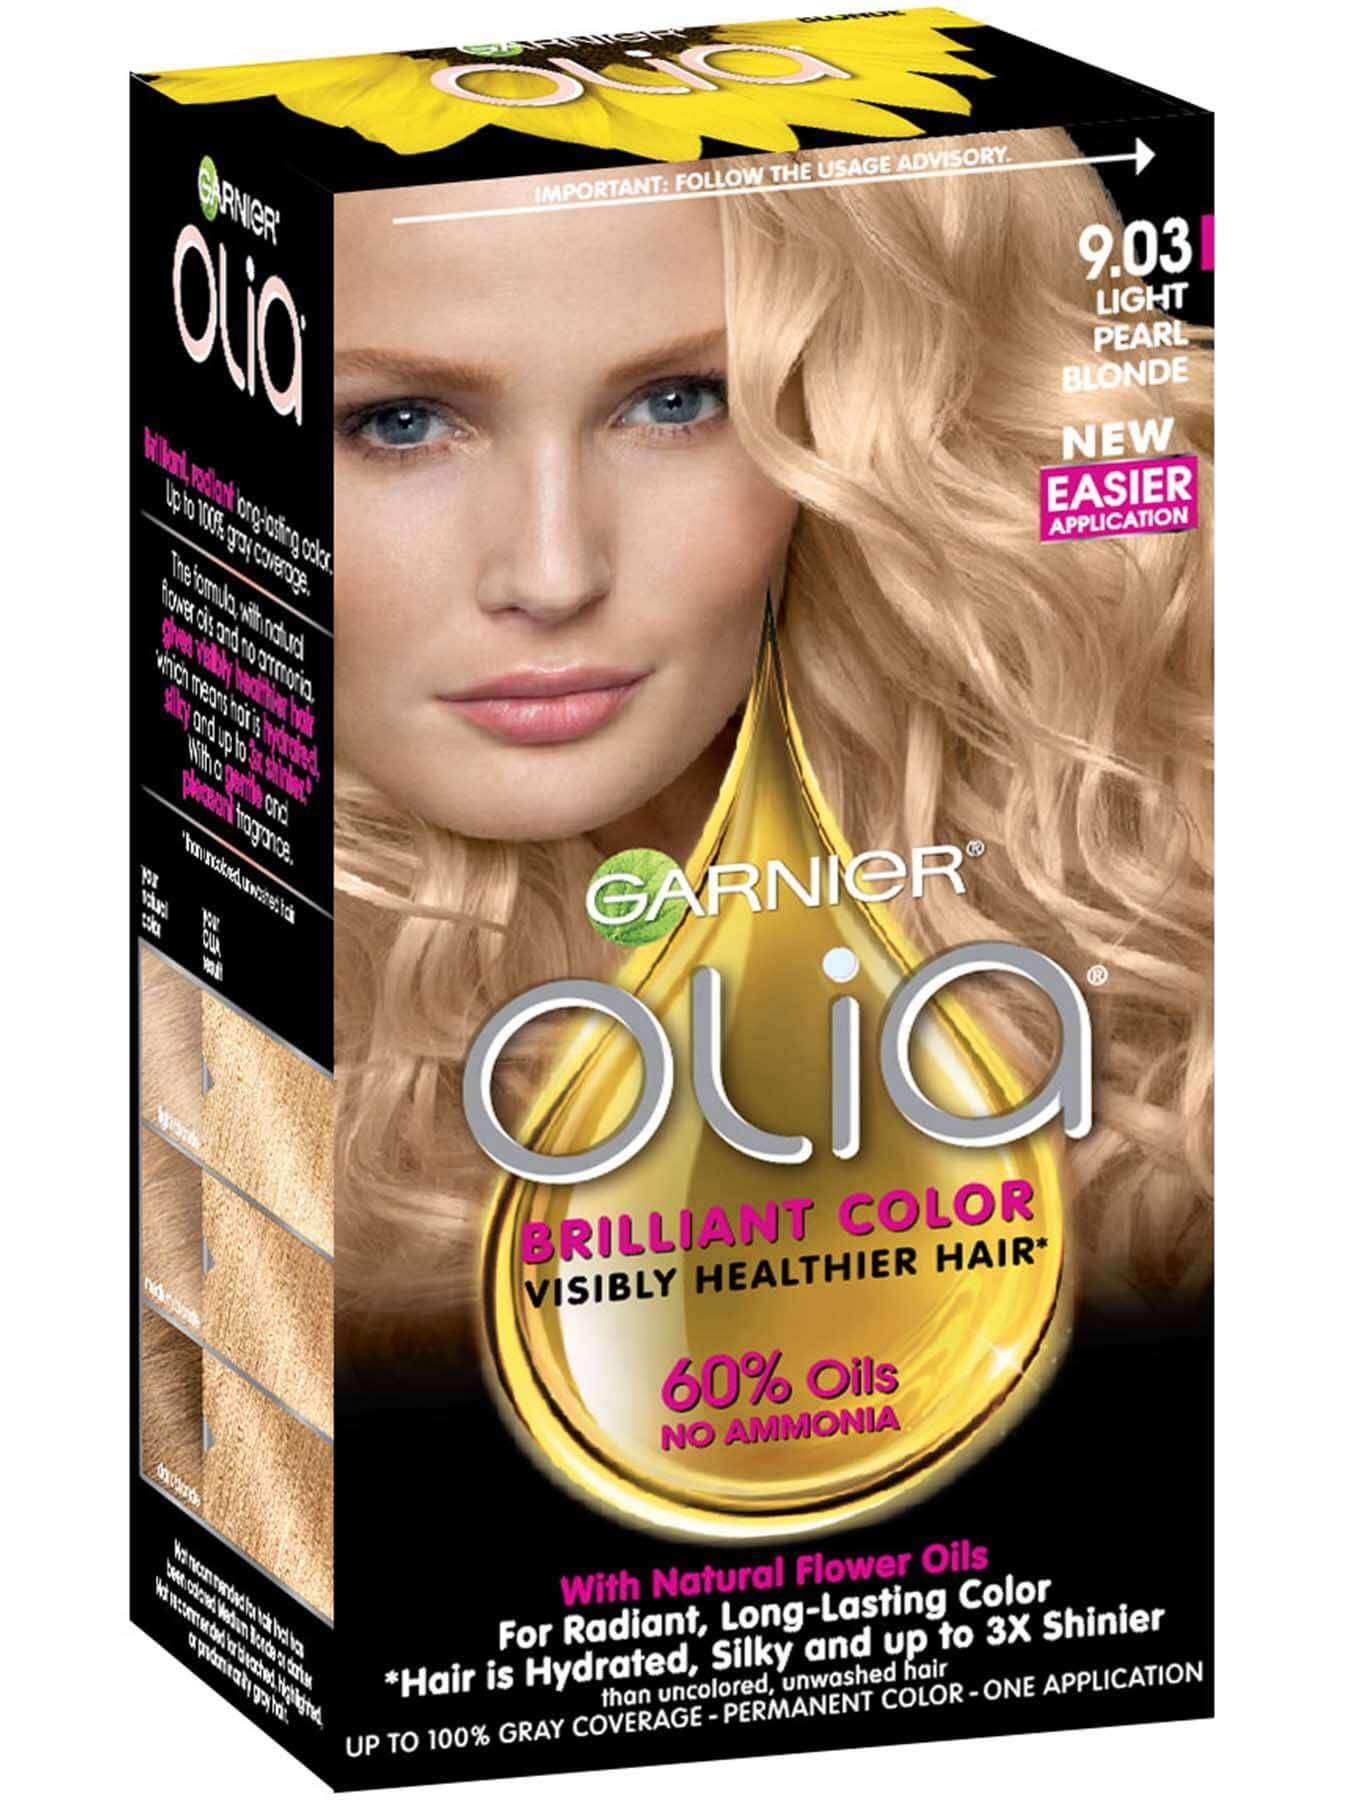 Ammonia-Free Permanent Light Pearl Blonde Hair